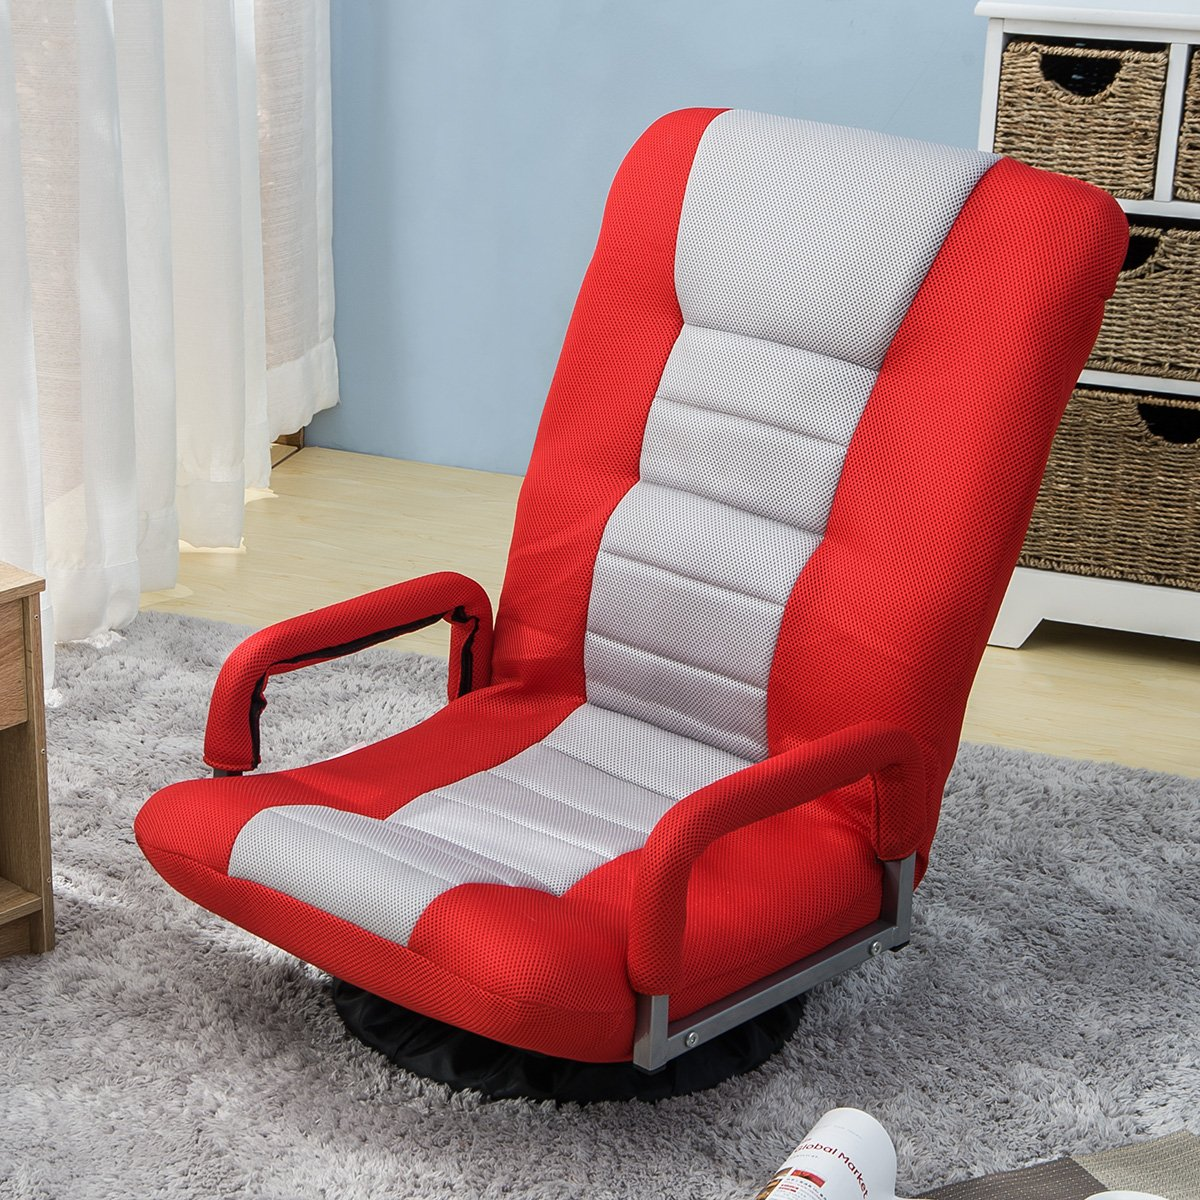 Harper&Bright Designs Swivel Video Rocker Gaming Chair Adjustable Floor Chair (Red)